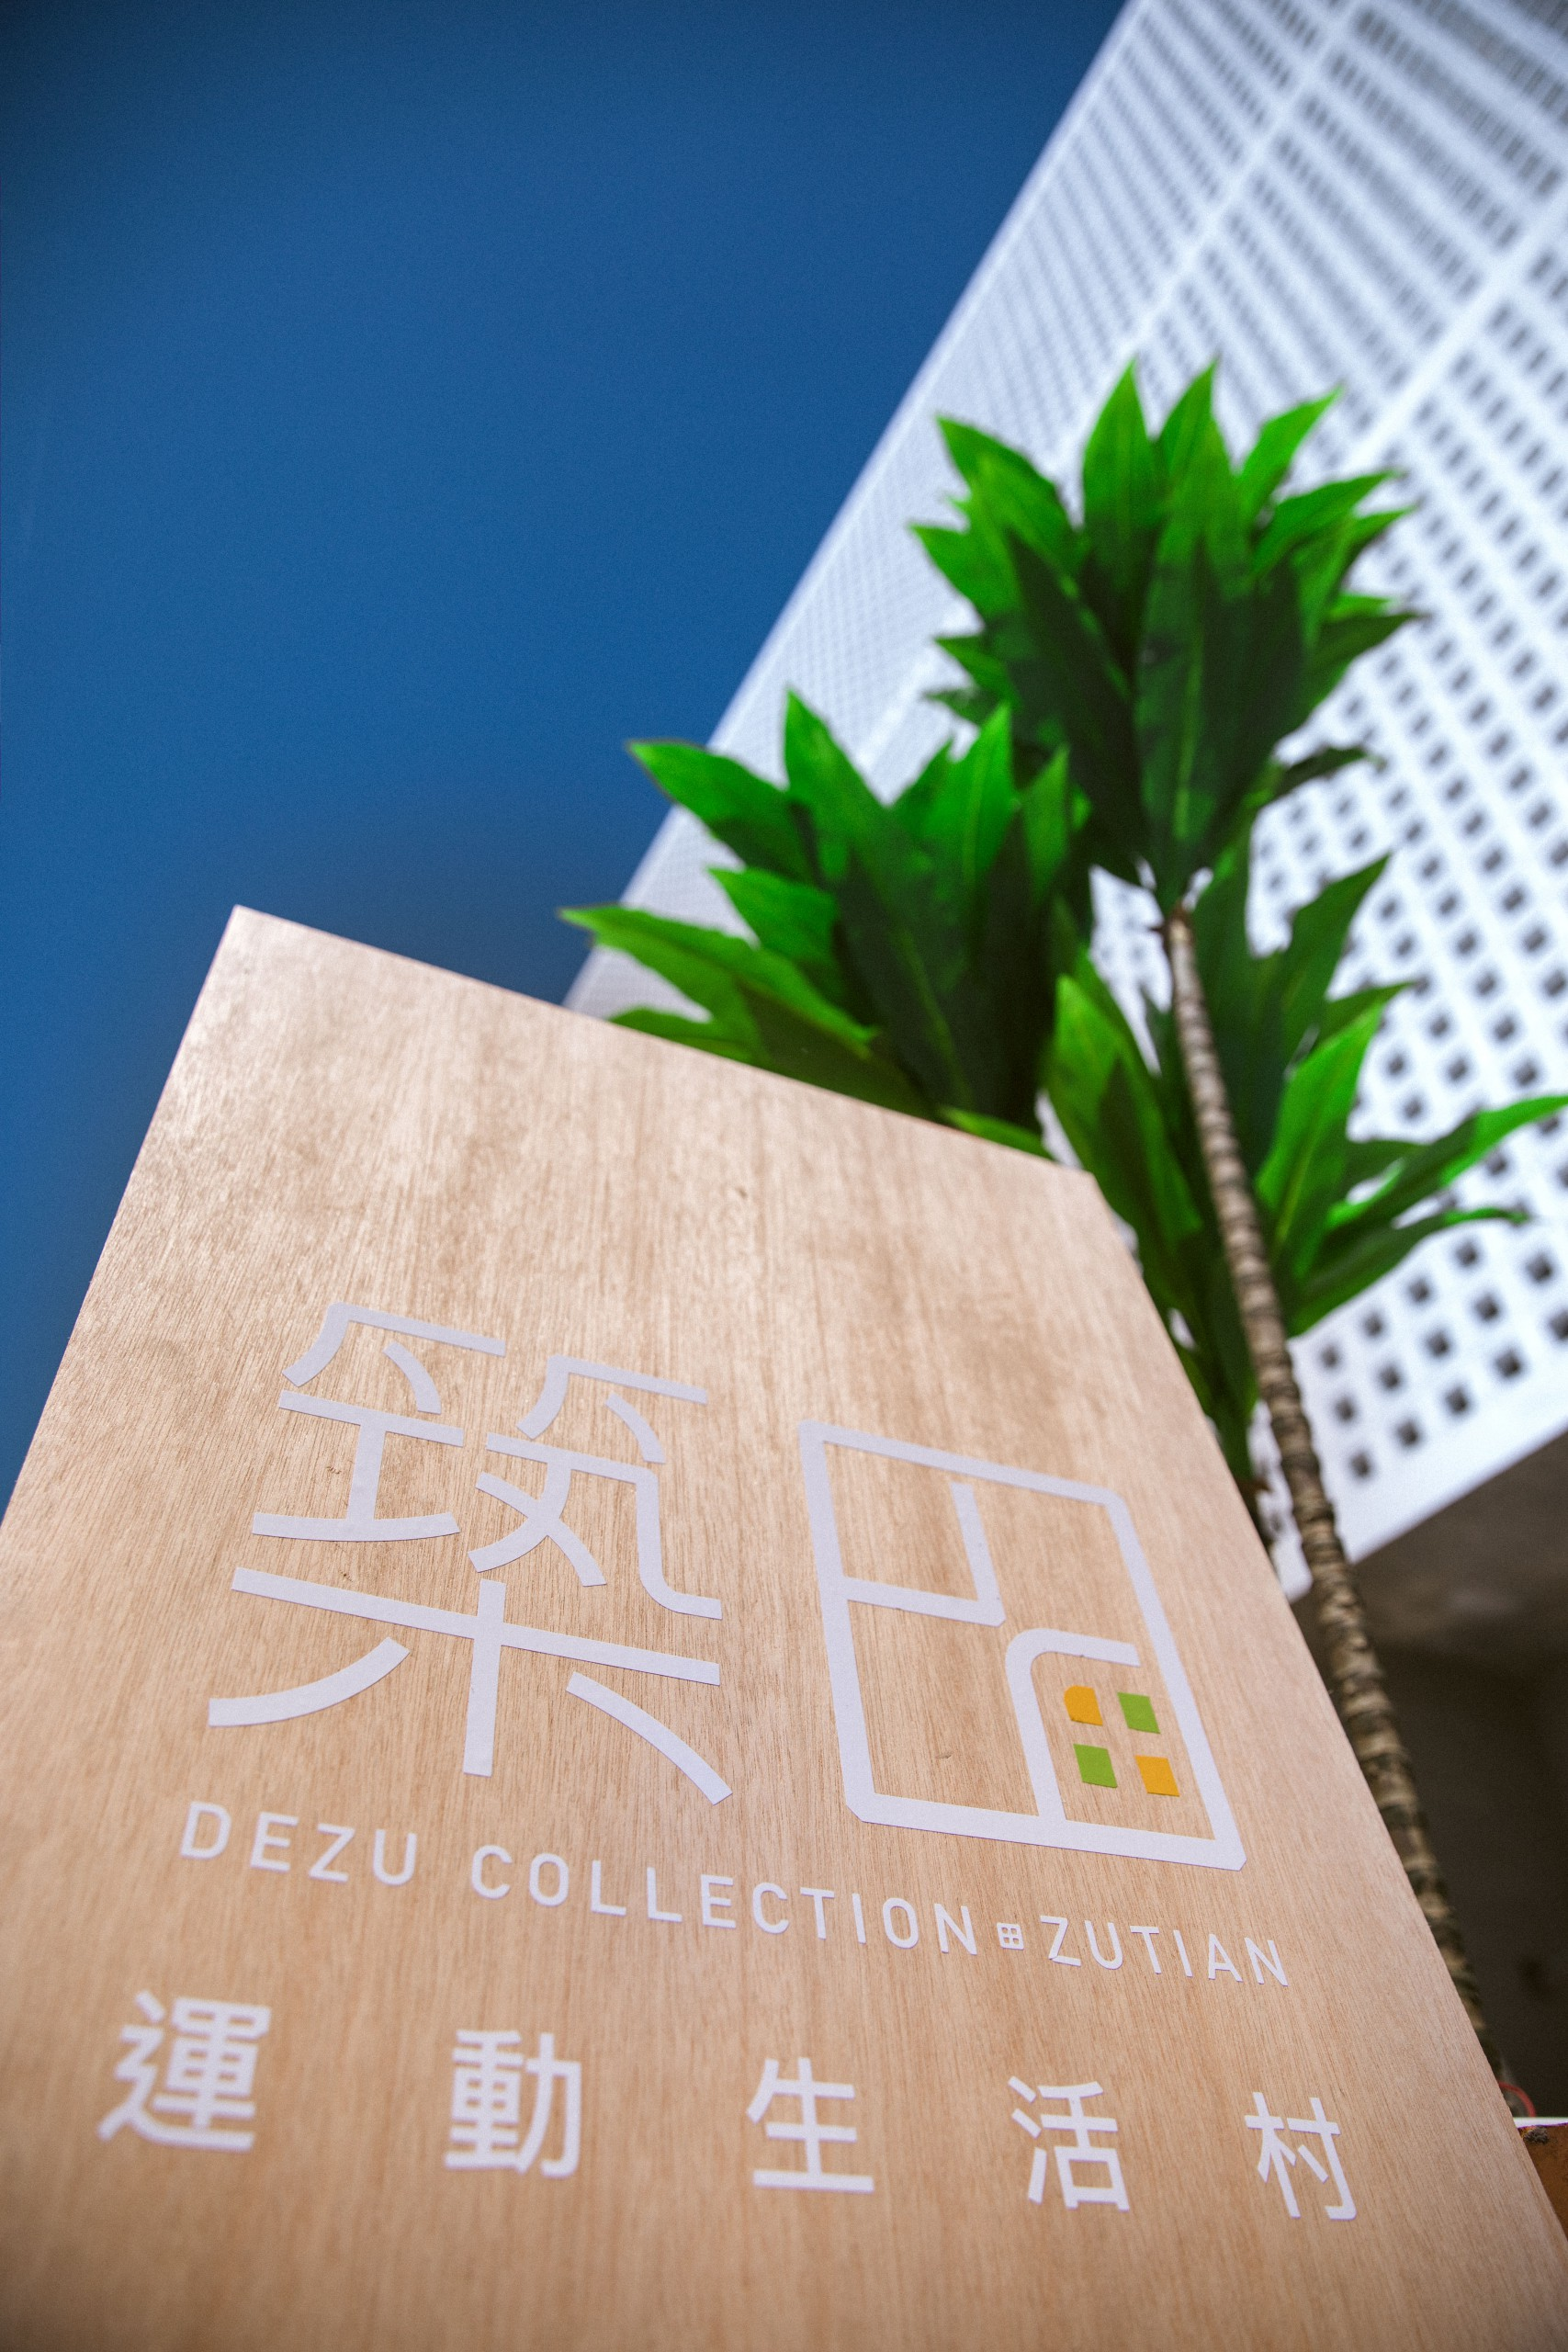 德築-DEZU-project-Zutian-activity-planting-party-6